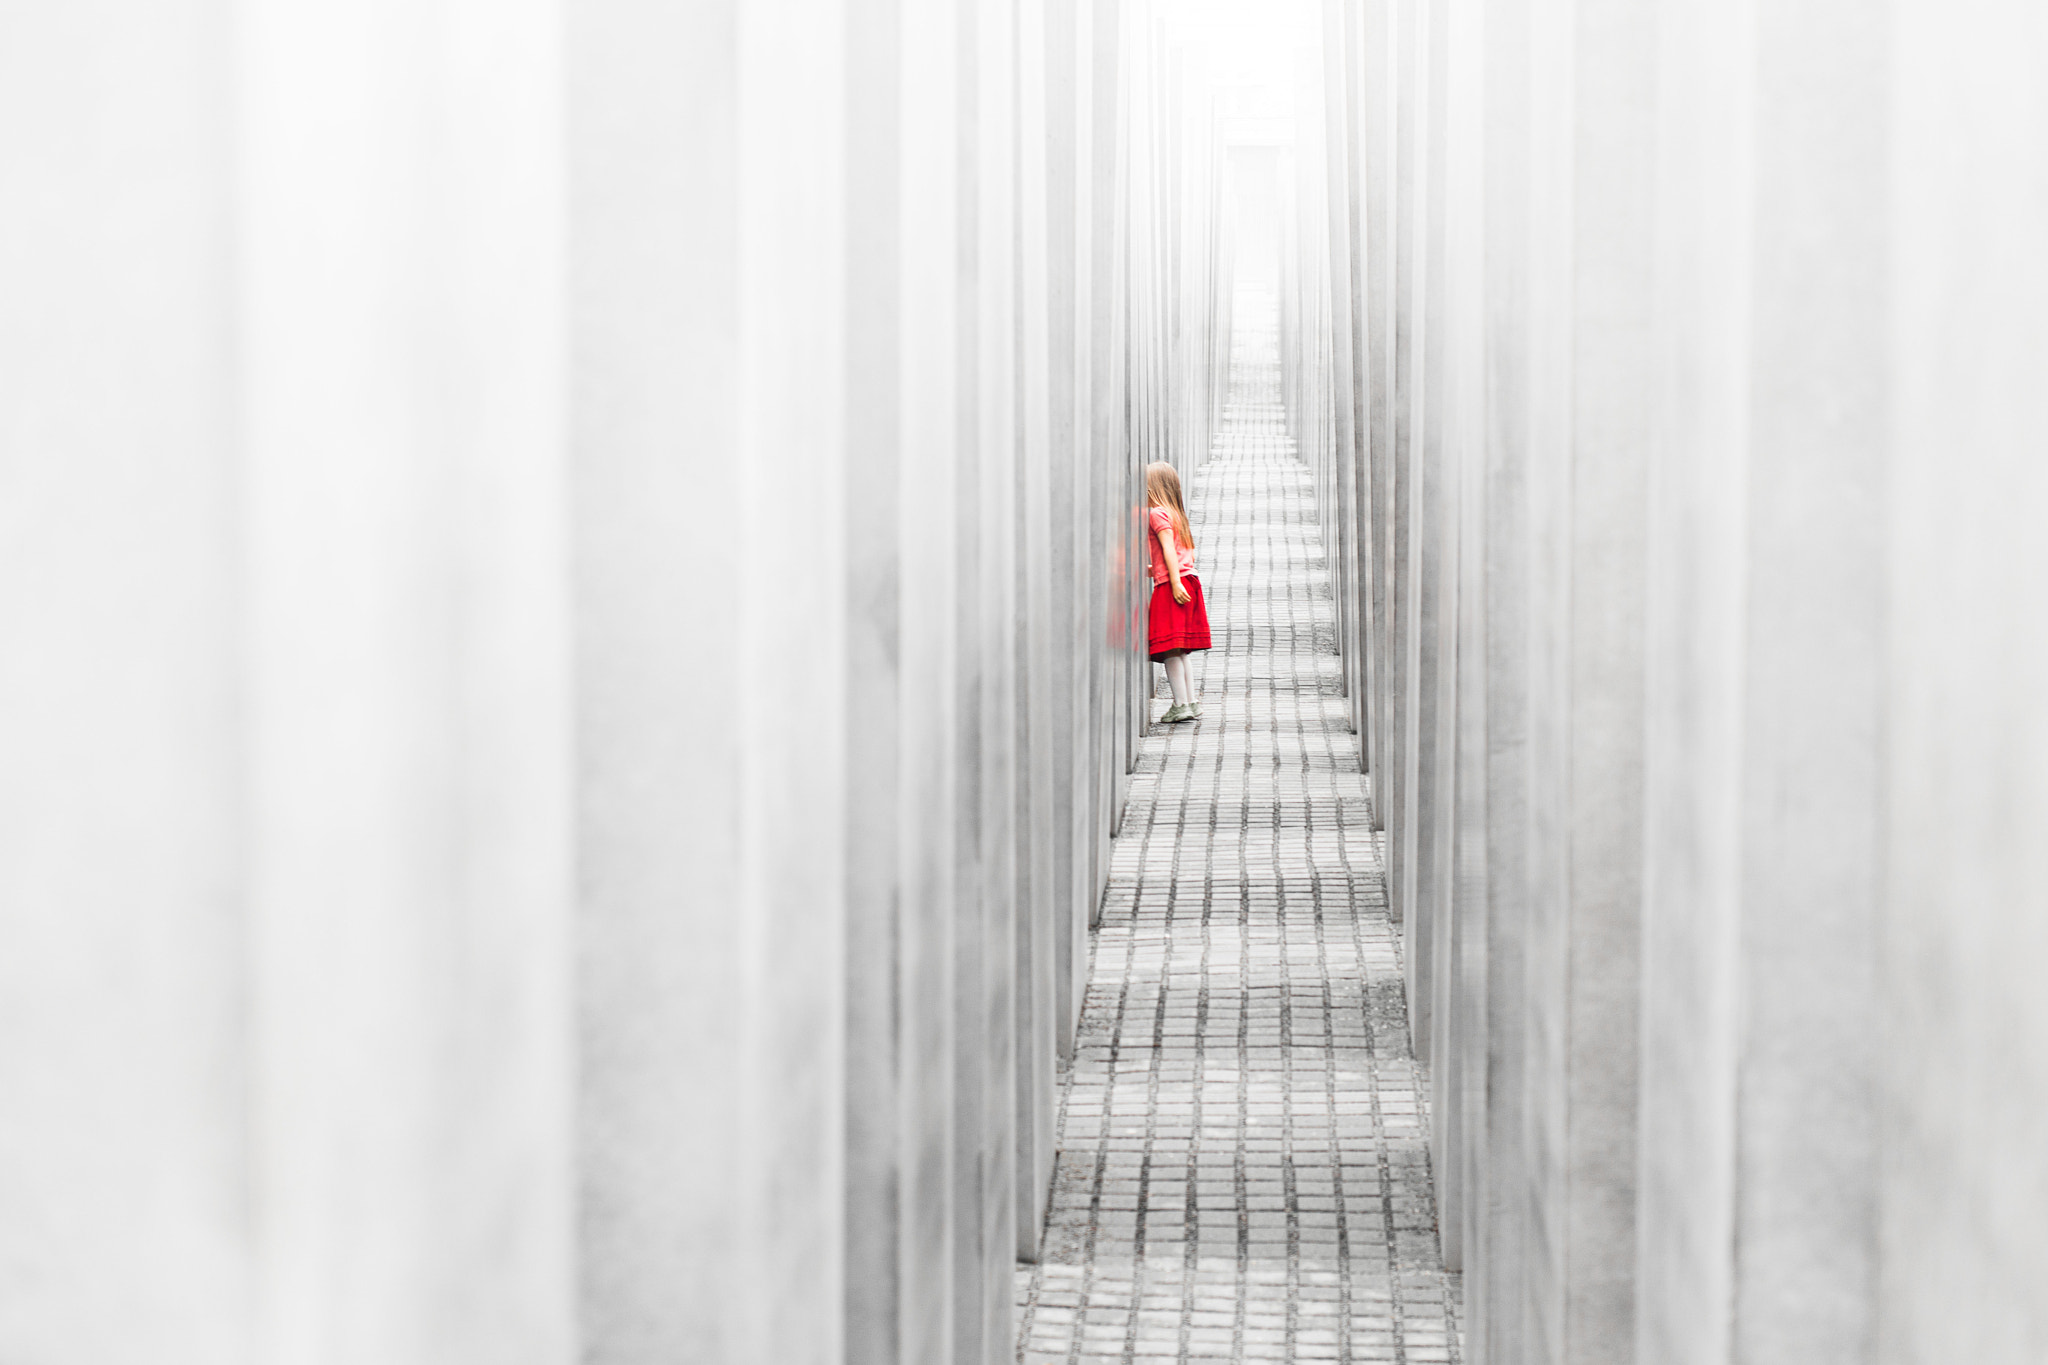 Photograph Hide and seek - Without the boy.. by Patrick Stroobach on 500px